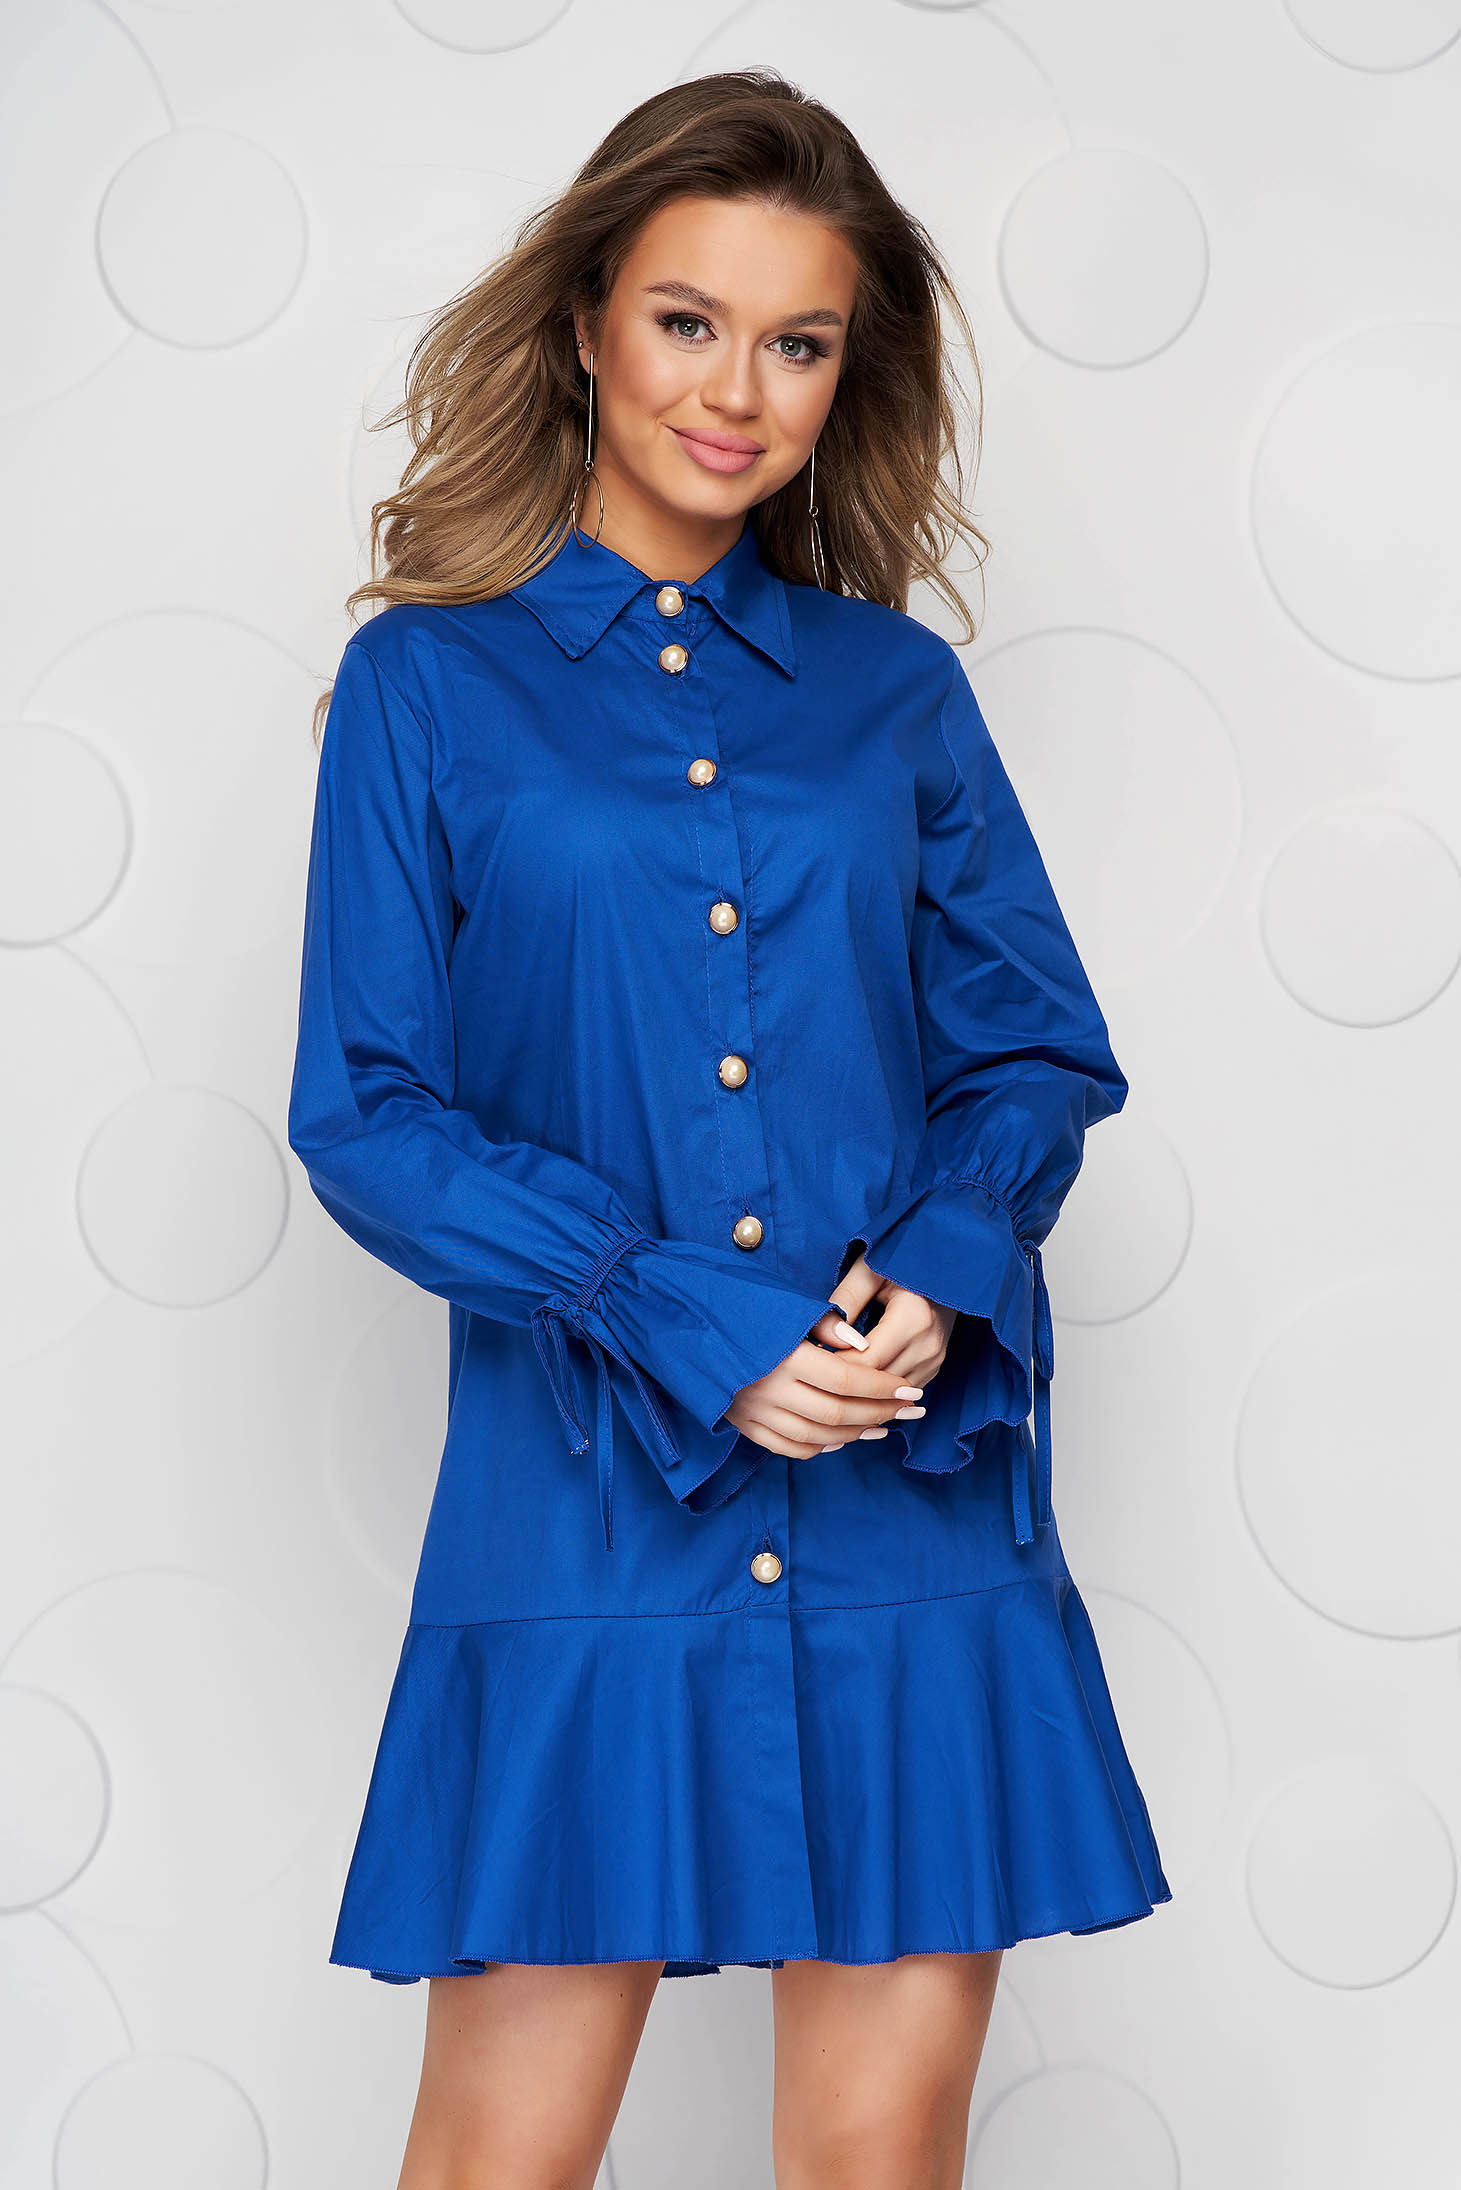 Blue dress thin fabric with bow accessories loose fit midi